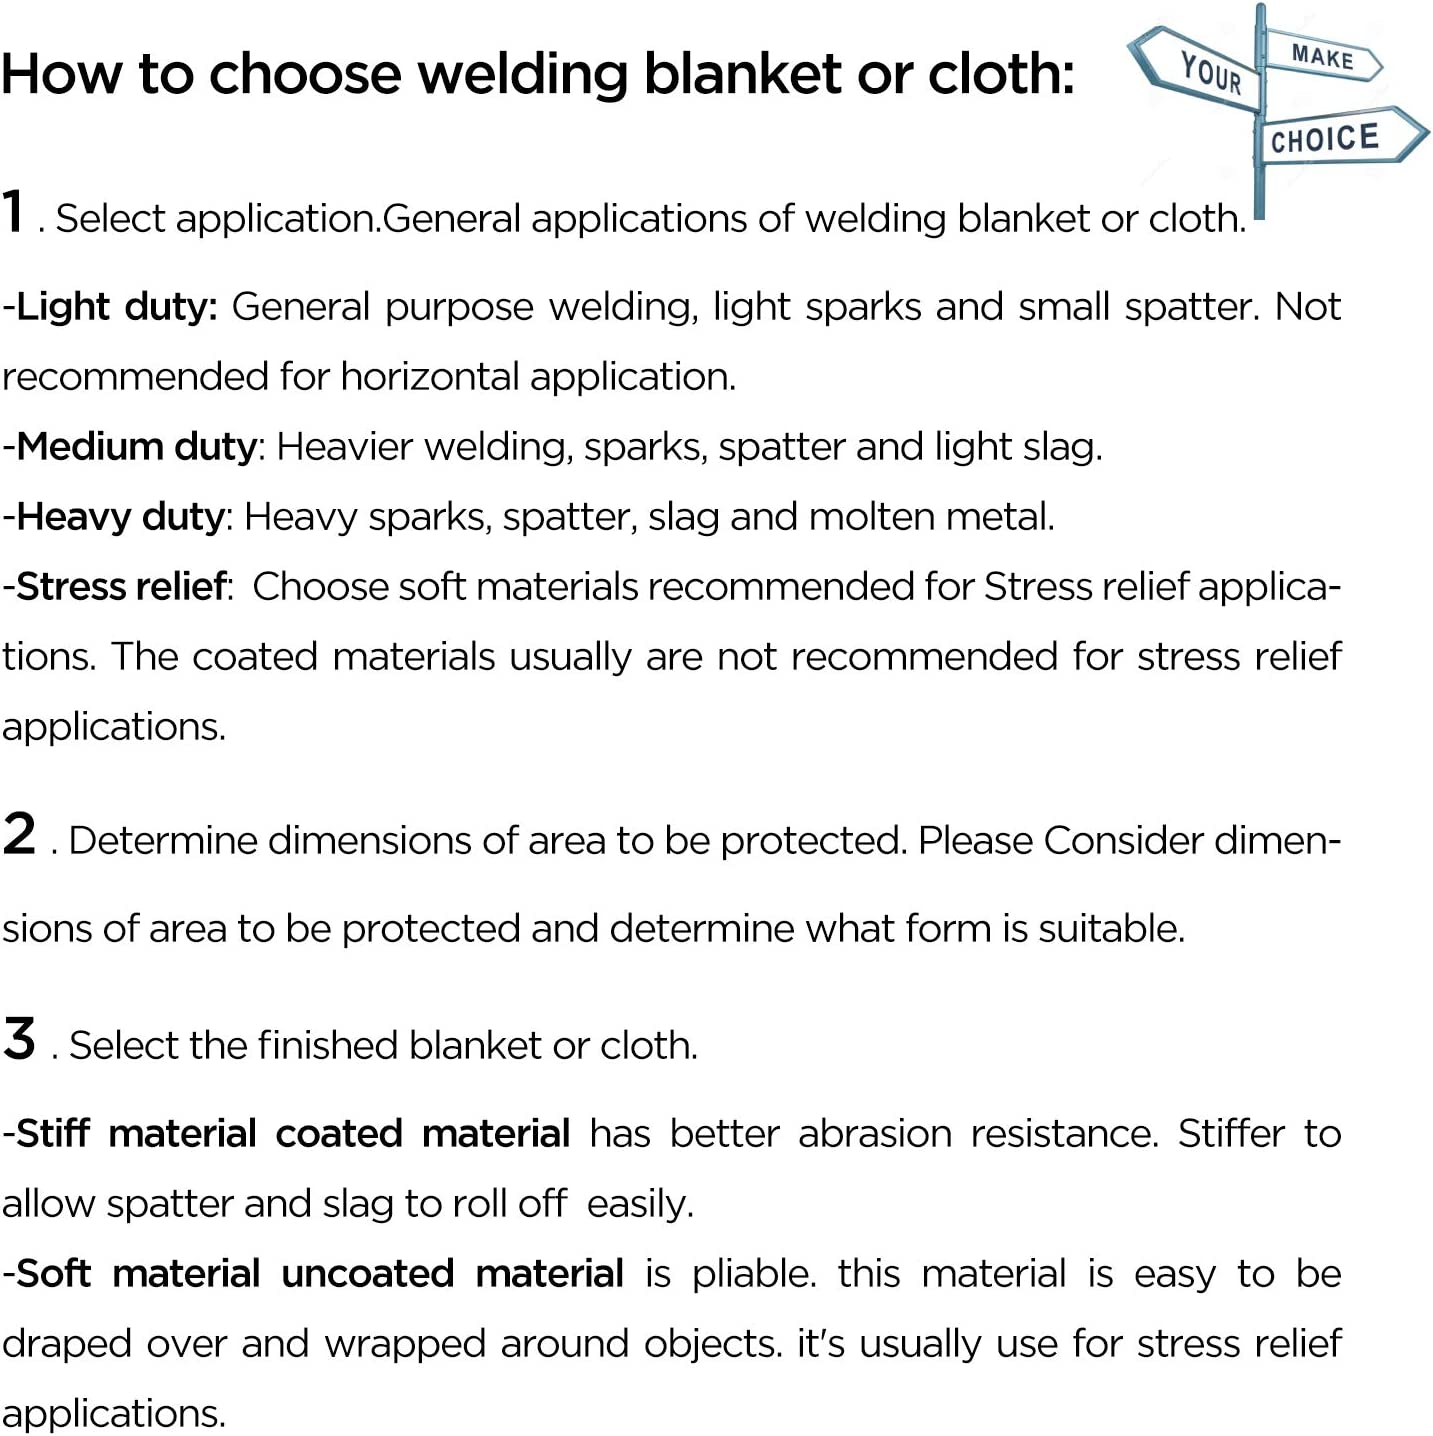 Welding Curtain 1100 Celsius Degree Maximum Thermal Protection Resistant OASD 3X3FT 1500GSM Heavy Duty Welding Blanket Carbon Fiber with Brass Grommets for Heat Shield